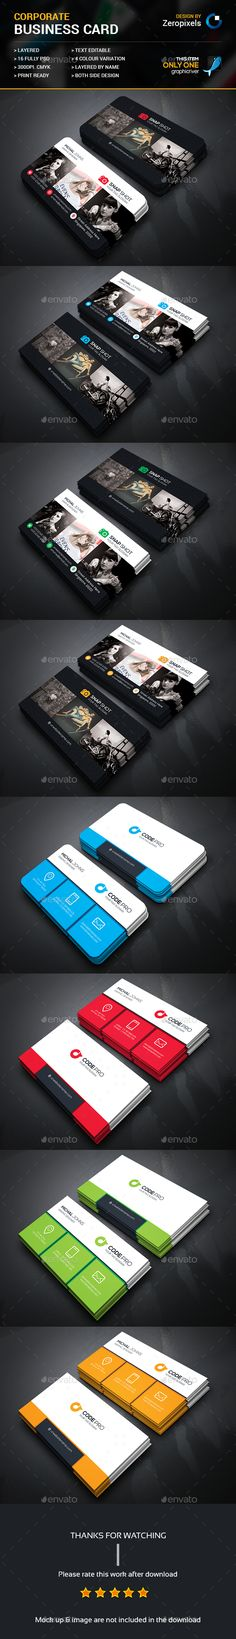 Corporate Business Card bundle — Photoshop PSD #simple #pack • Available here → https://graphicriver.net/item/corporate-business-card-bundle/16559654?ref=pxcr